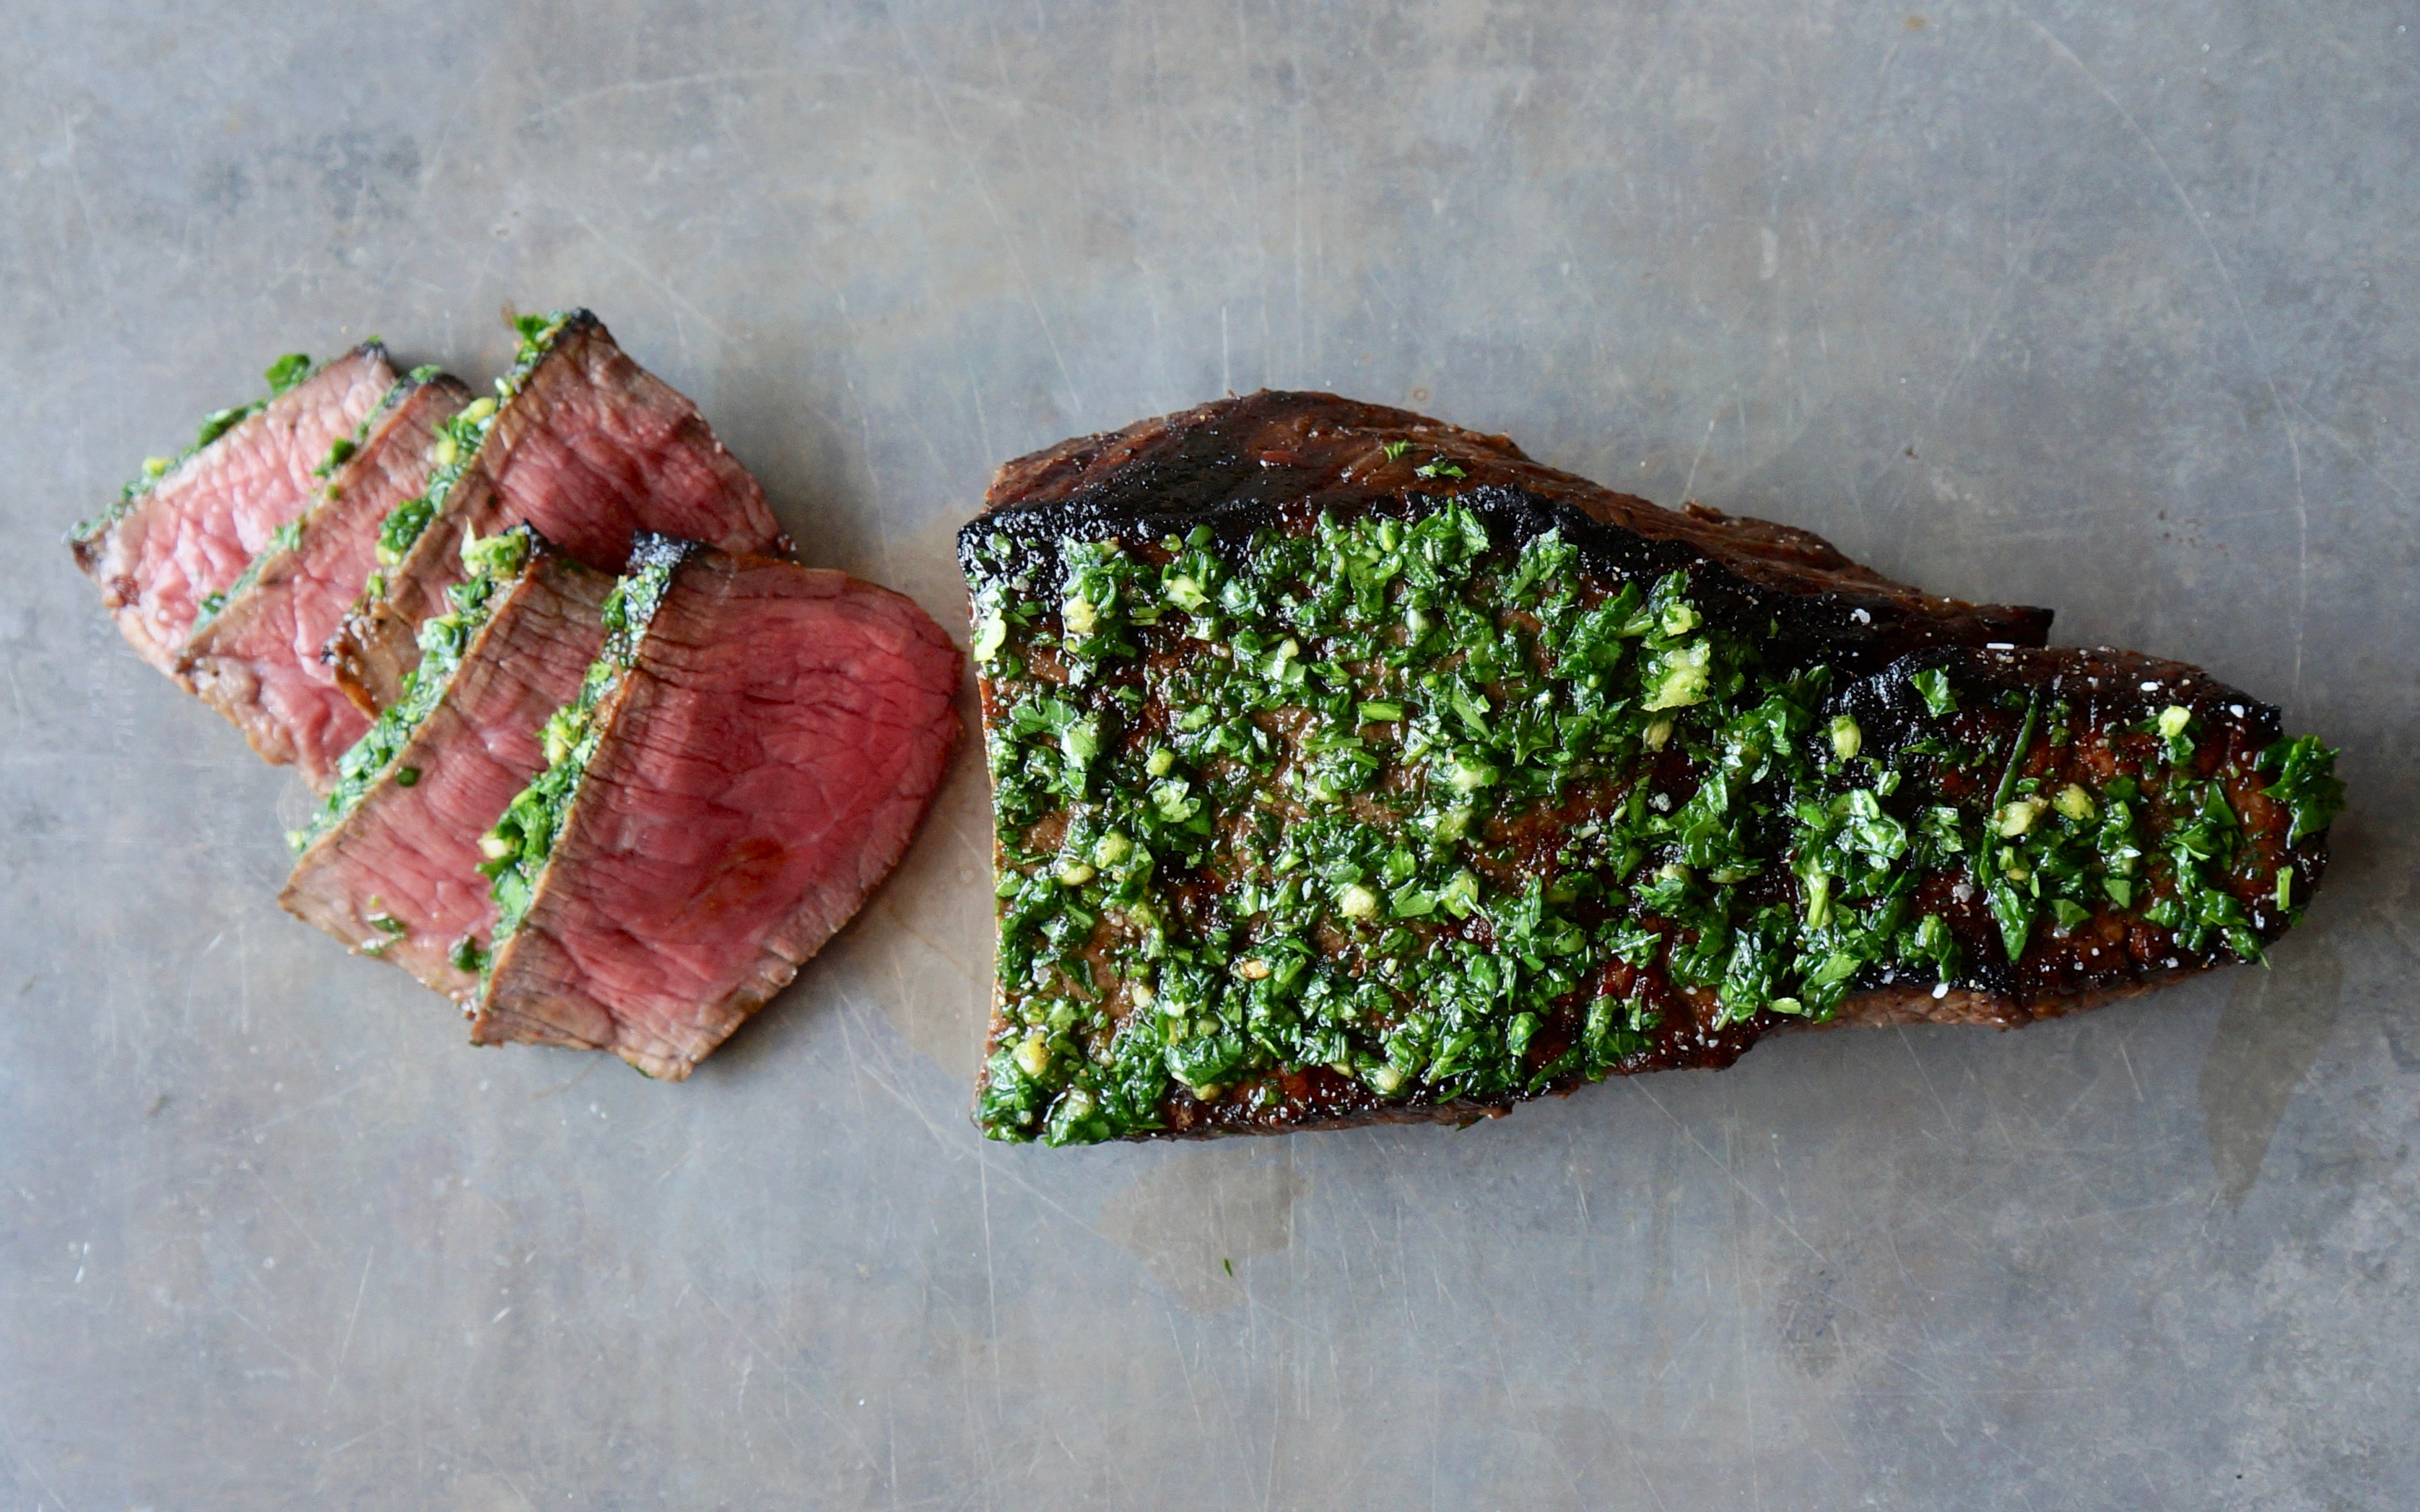 Parsley-Garlic-London-Broil-Top-Round-Steak-Rebecca-Gordon-Editor-In-Chief Buttermilk-Lipstick-Culinary Entertaining Techniques-RebeccaGordon-Southern-Hostess-Pastry-Chef-Birmingham-Alabama